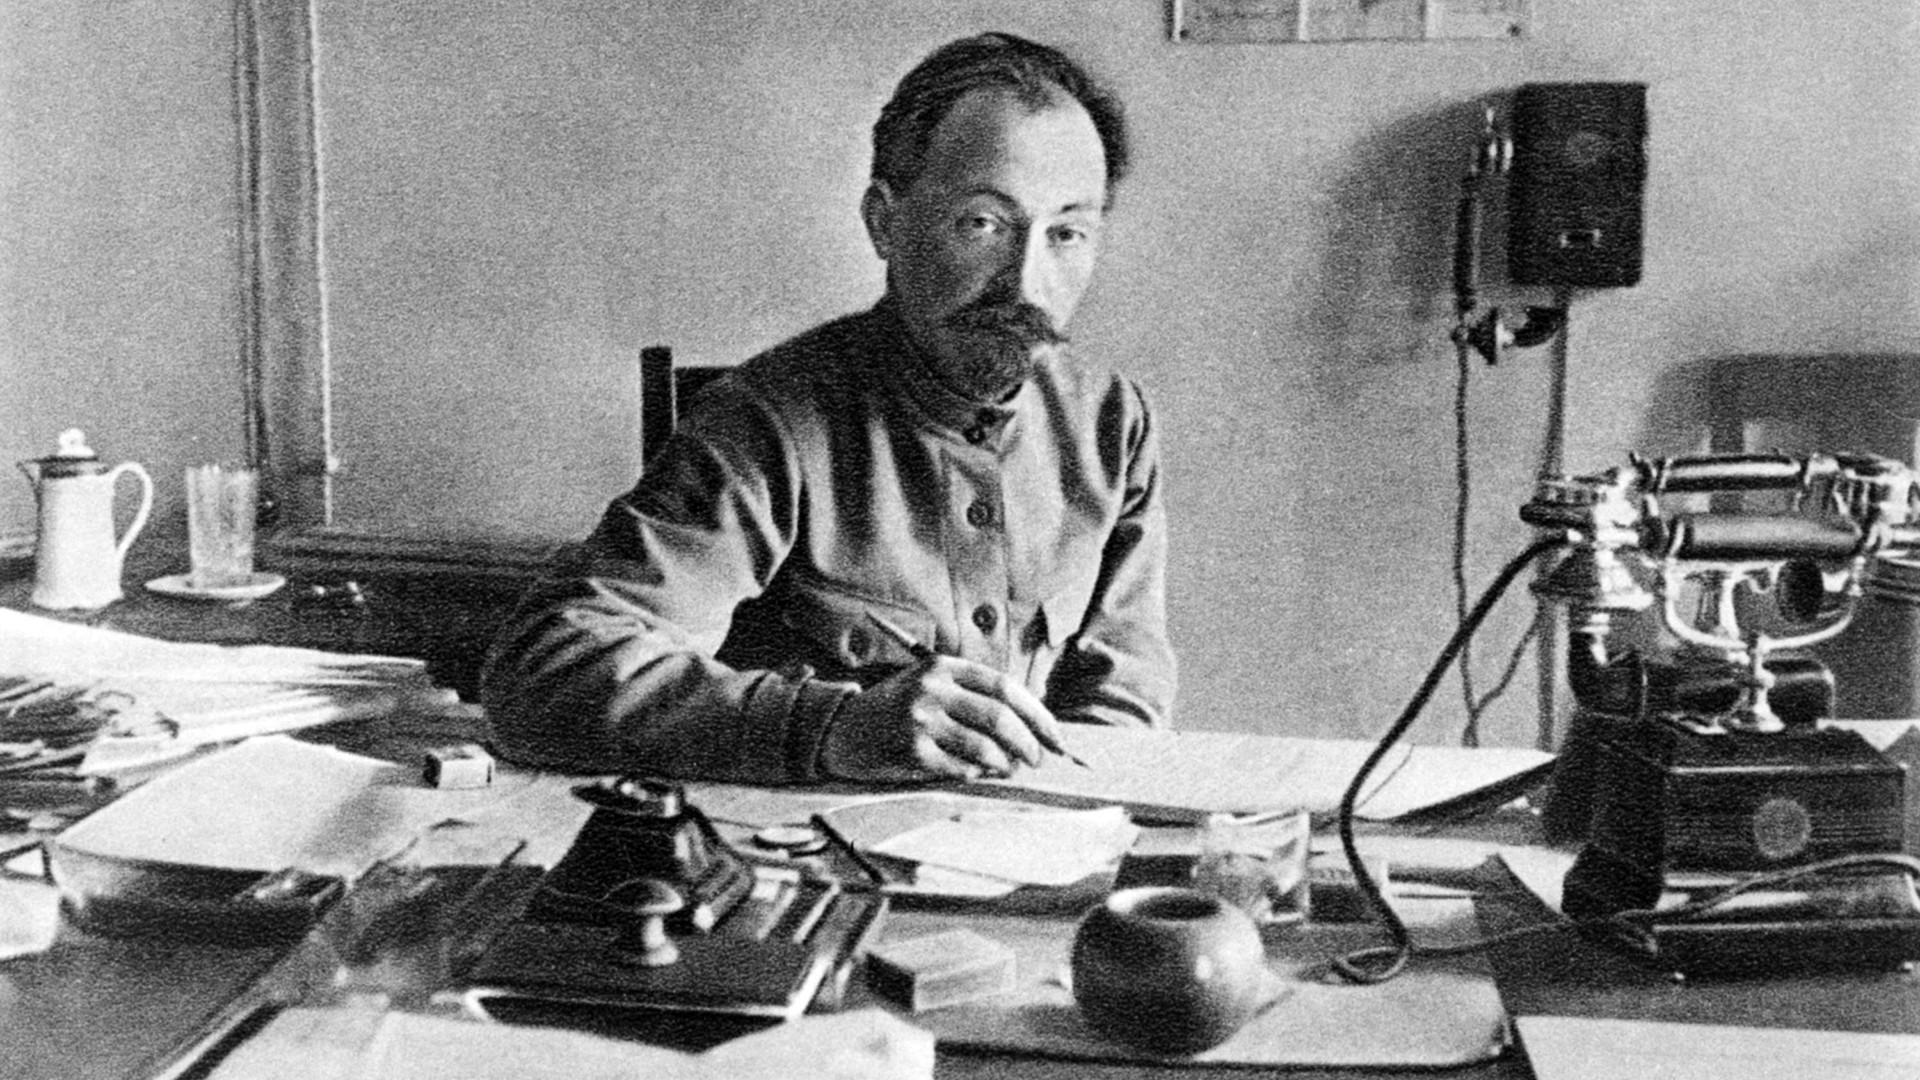 'Iron Felix' behind his working table. Maybe he is signing execution orders - or, perhaps, establishing another orphanage.